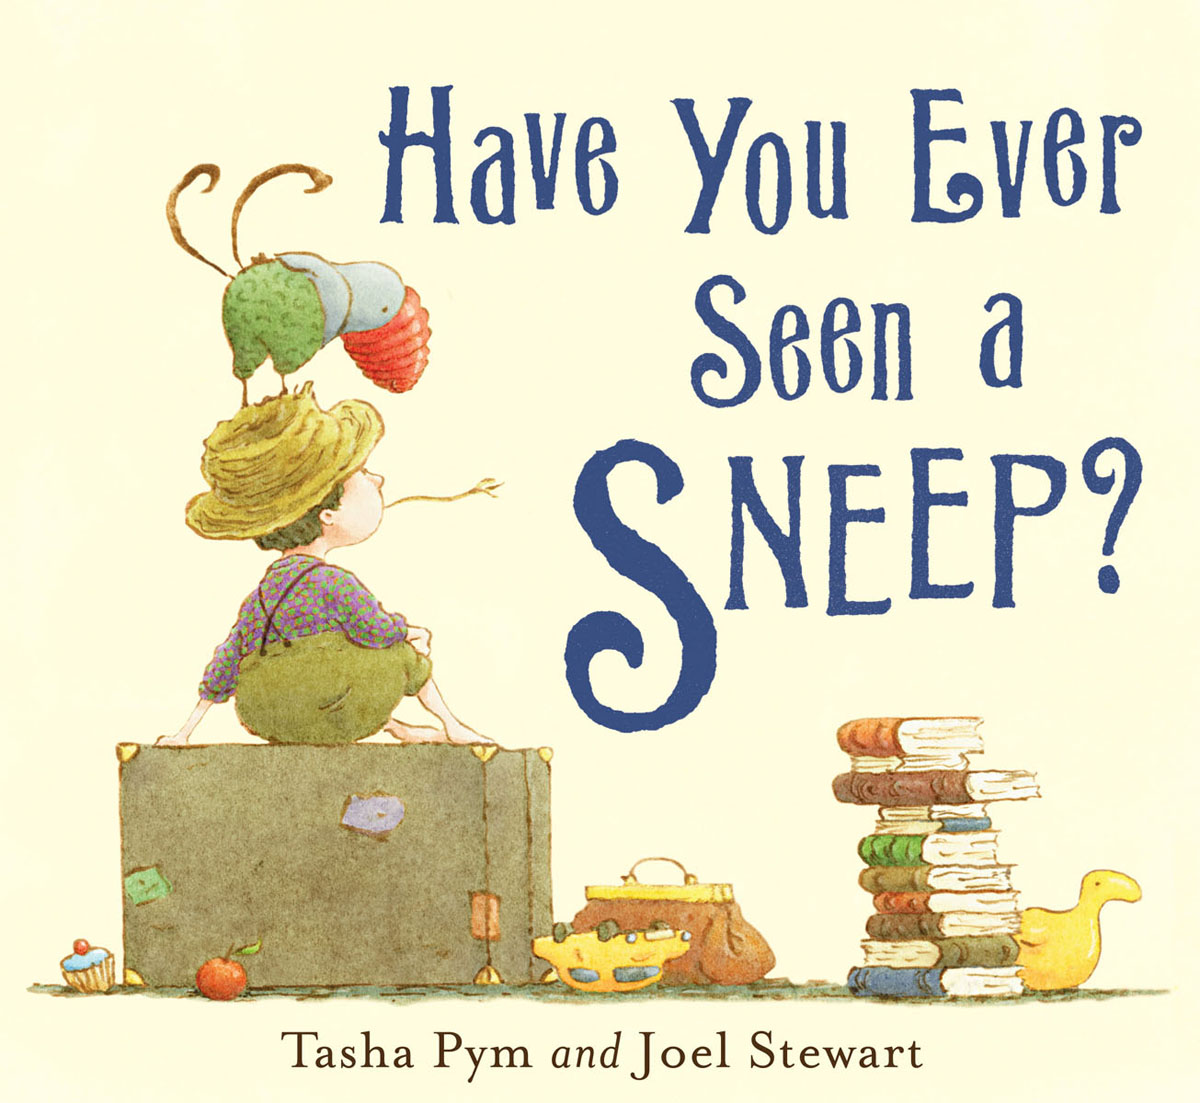 Have You Ever Seen a Sneep? have you seen her